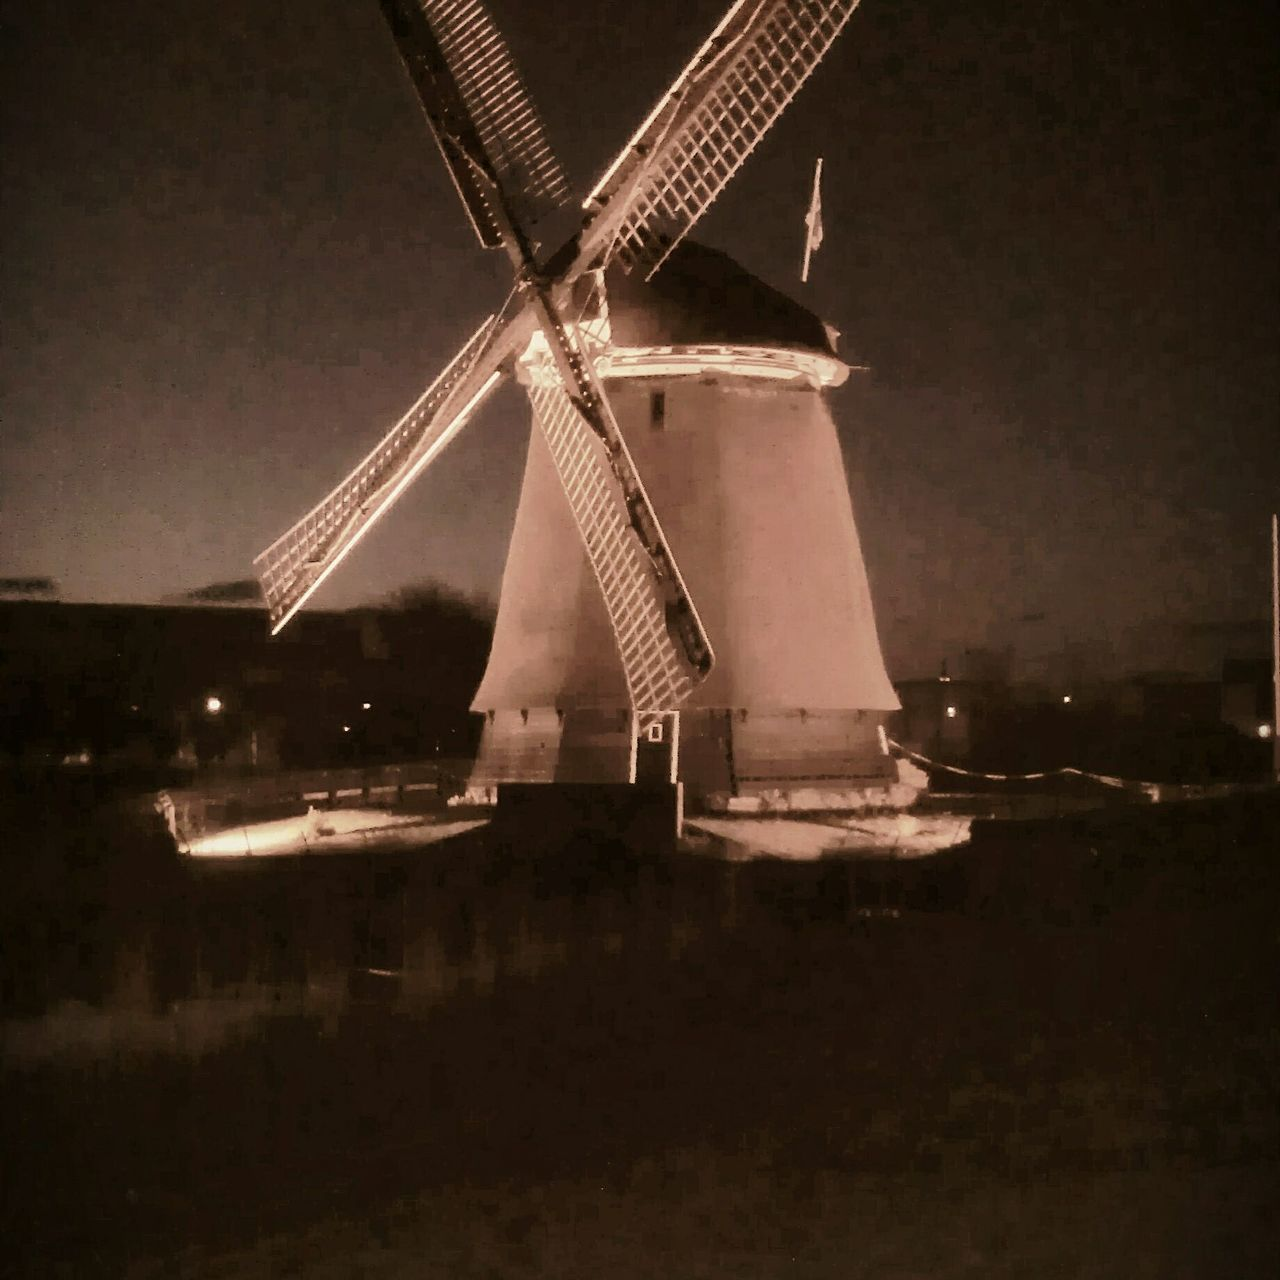 Netherlands Night Built Structure No People Outdoors Sky Windmill